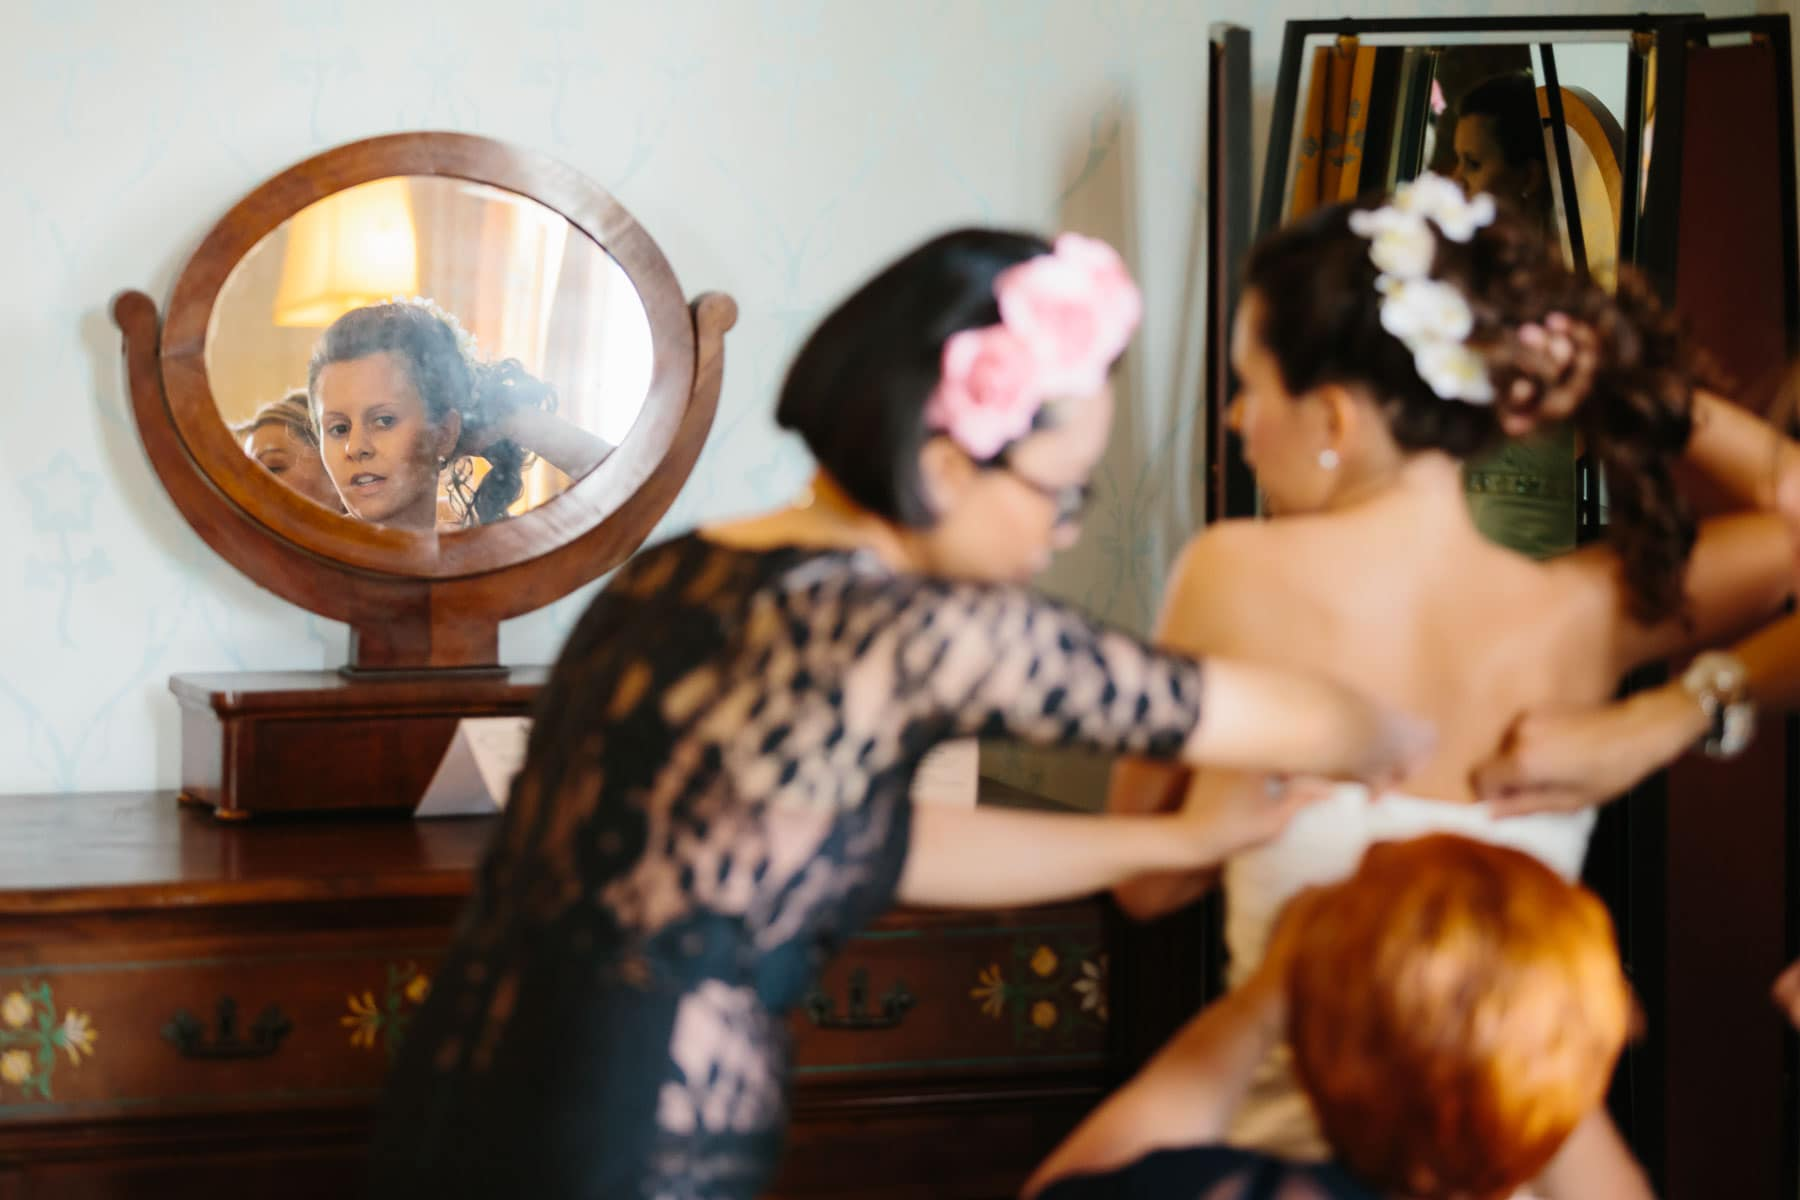 The bride checks herself out in a small round mirror as several women help her with the wedding dress in this Italian destination wedding in Castello Dal Pozzo.